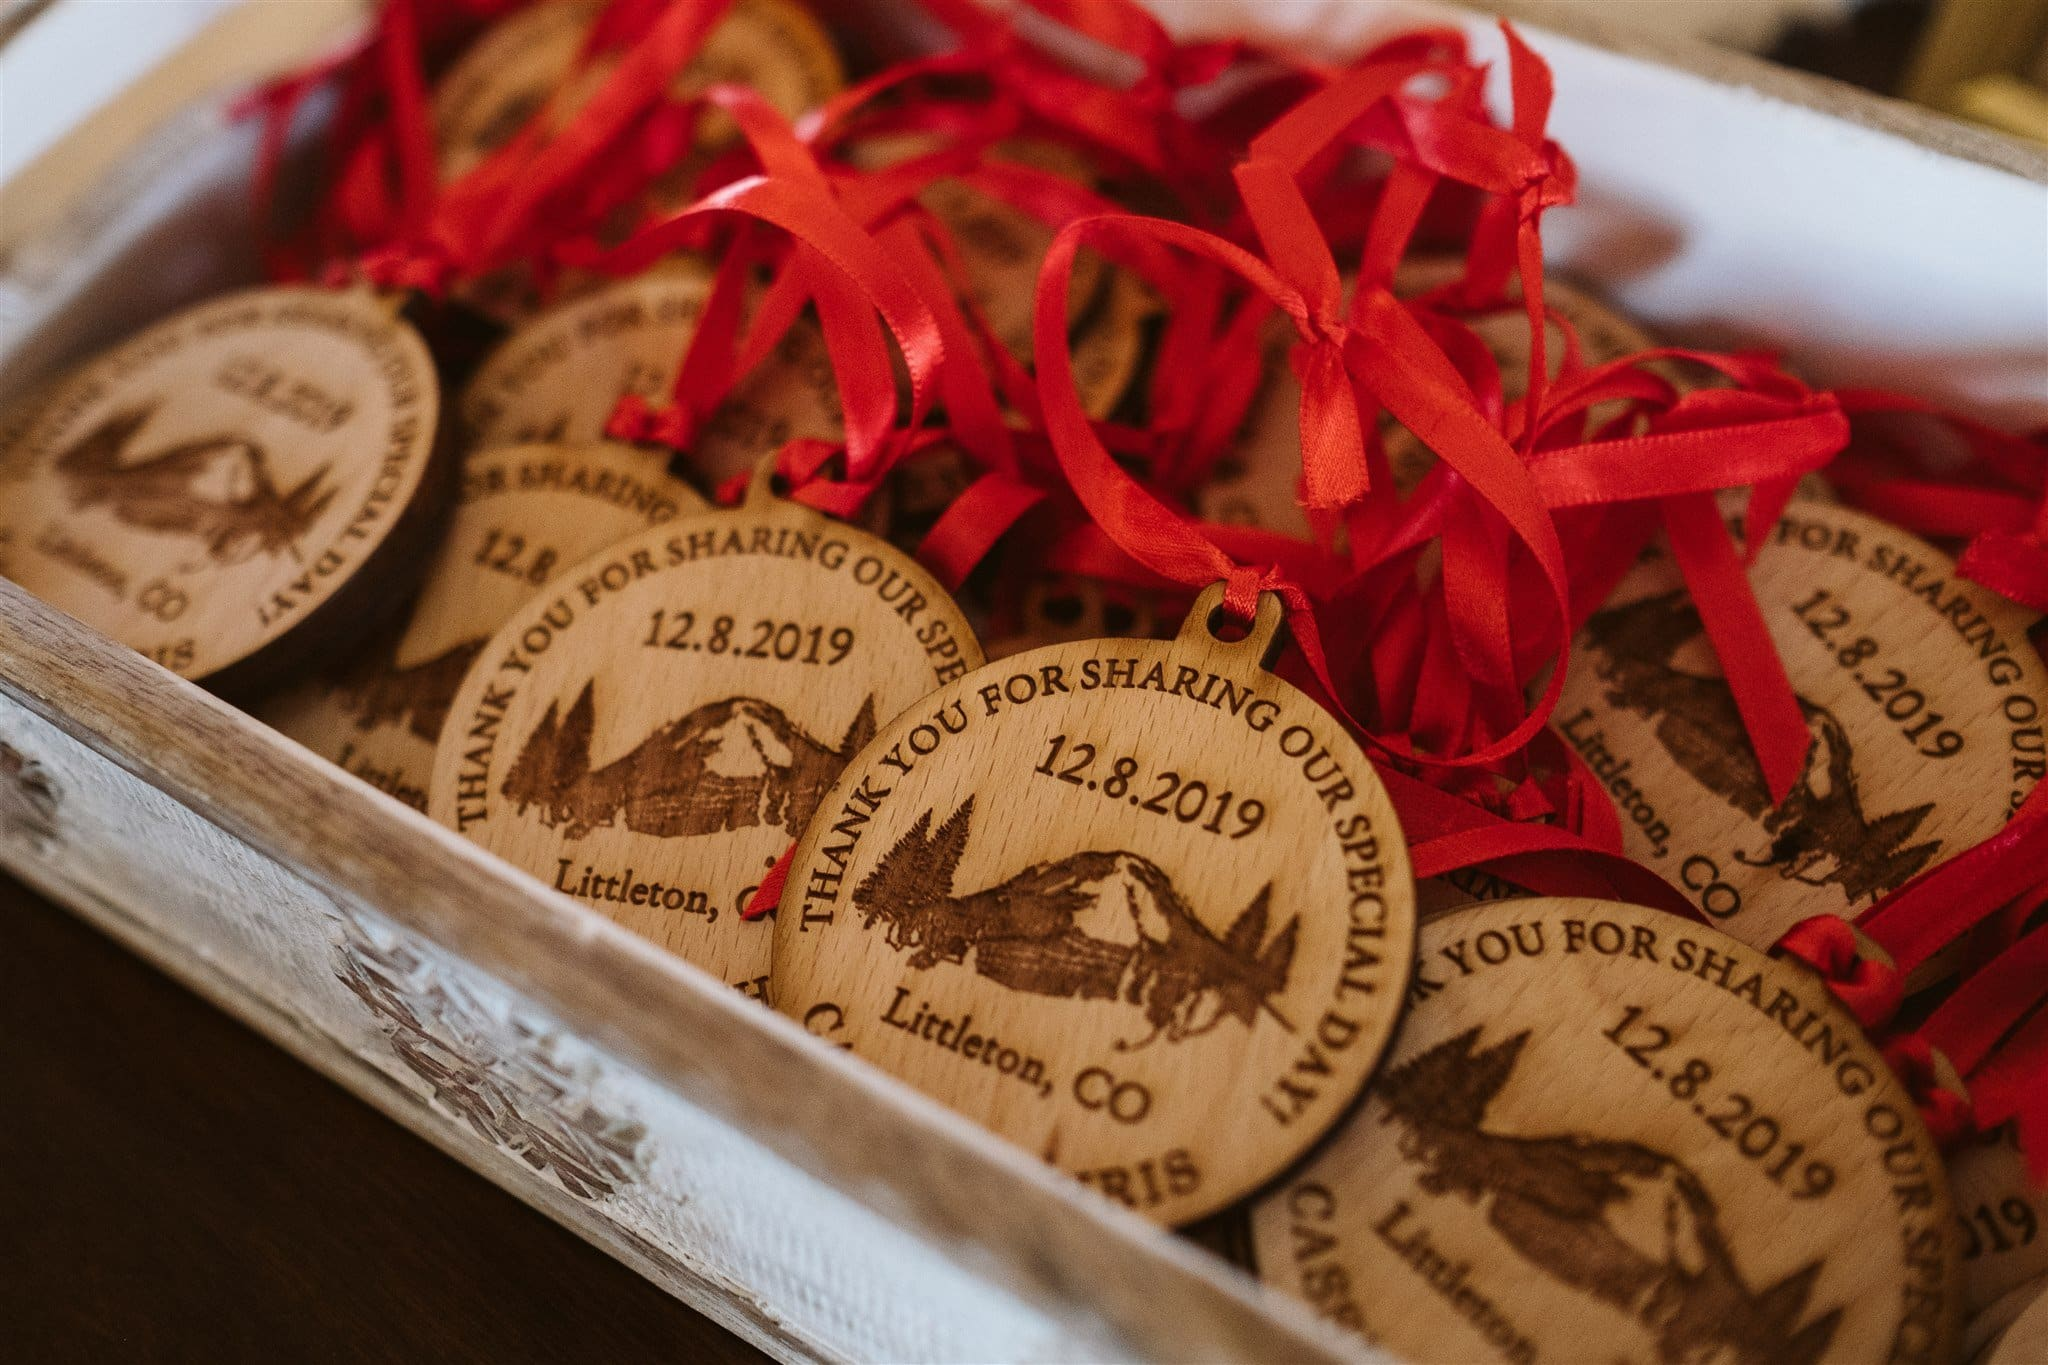 Wood burned Christmas ornament wedding favors